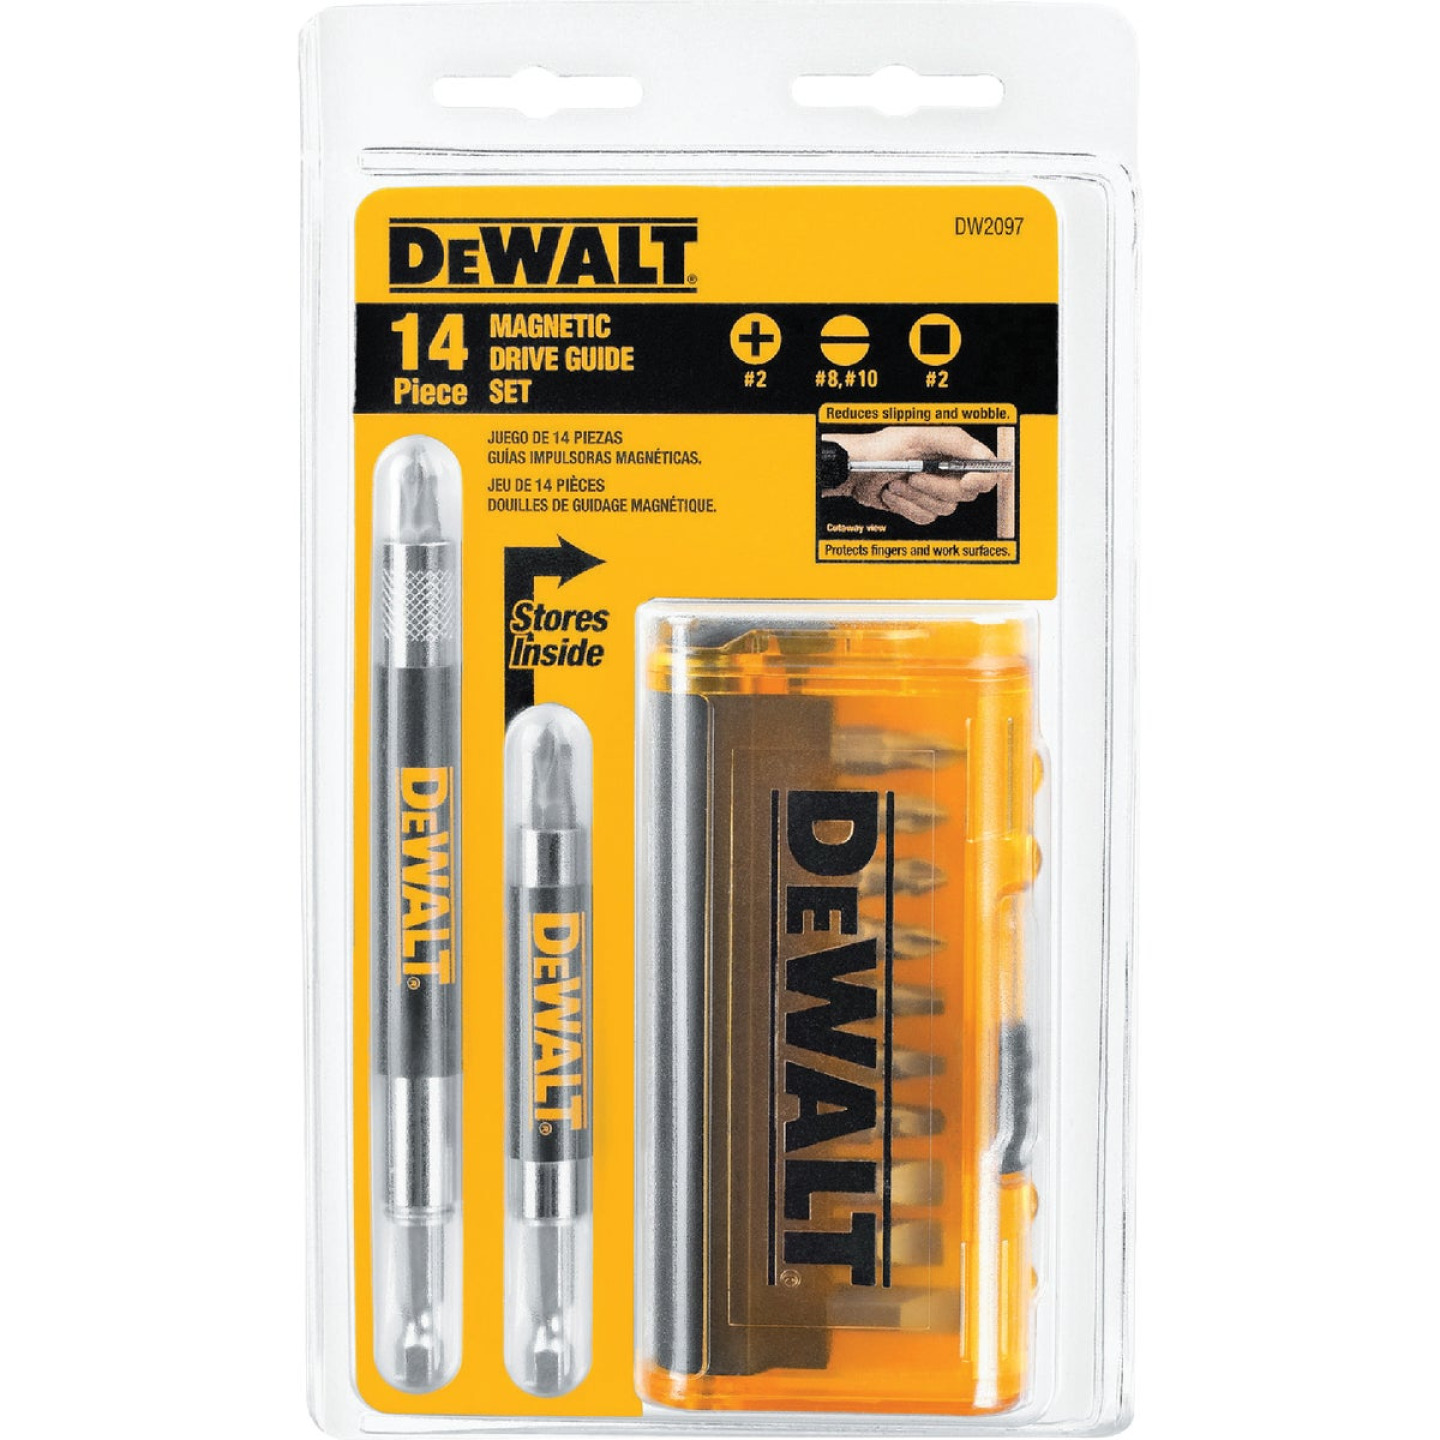 DeWalt 14-Piece Magnetic Drive Guide Screwdriver Bit Set Image 1